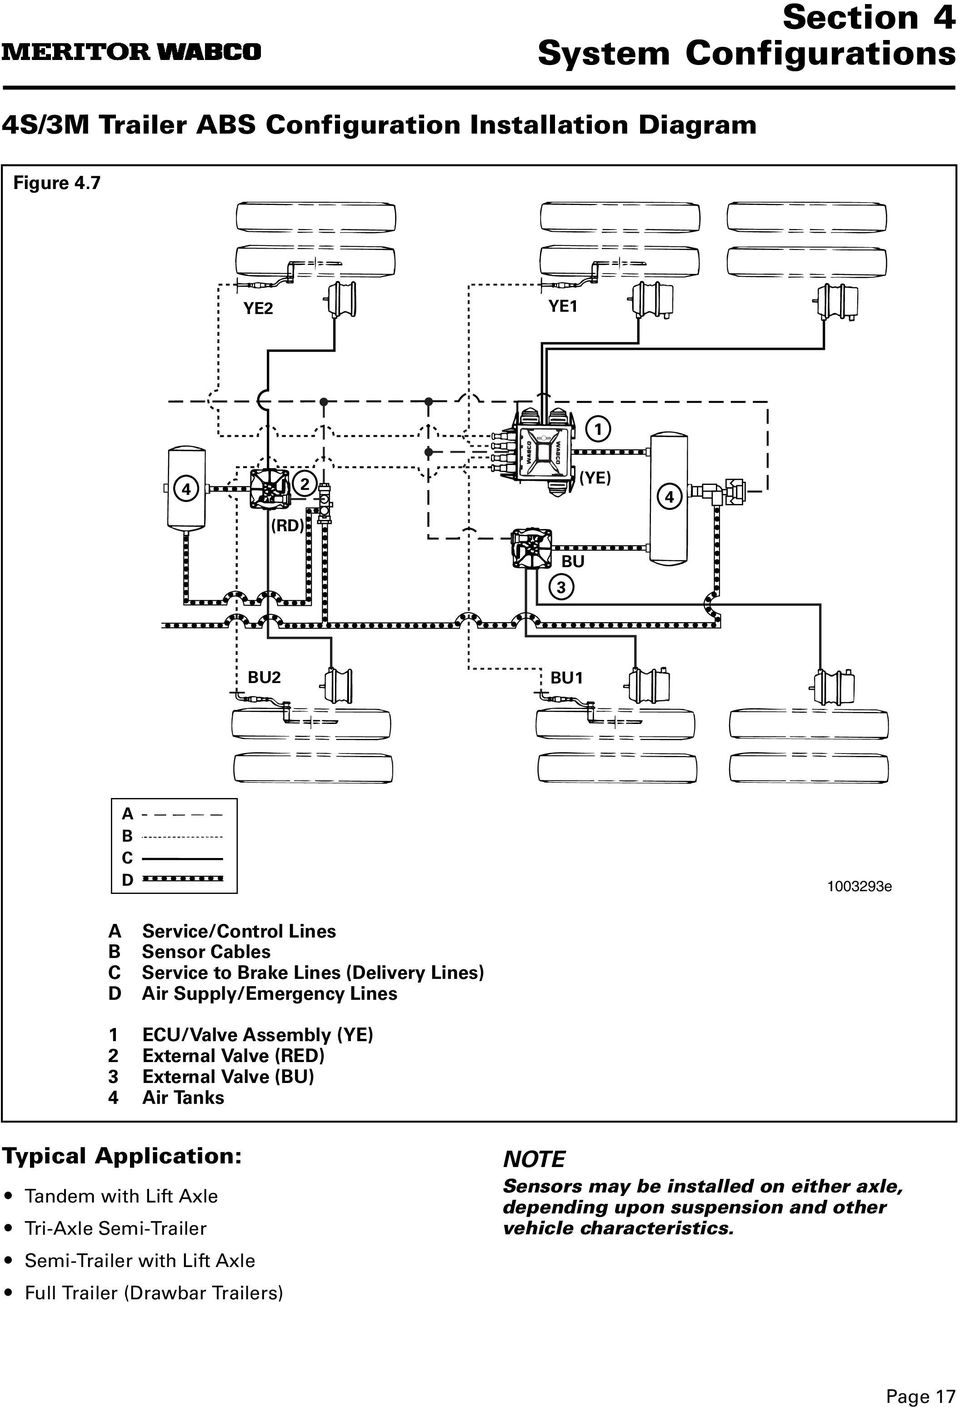 Easy Stop Tm Trailer Abs Pdf 1994 Volvo 960 Anti Lock Brake System Electrical Diagram Supply Emergency Lines 1 Ecu Valve Assembly Ye 2 External 21 Section 4 Configurations Power Cable Wiring Diagrams